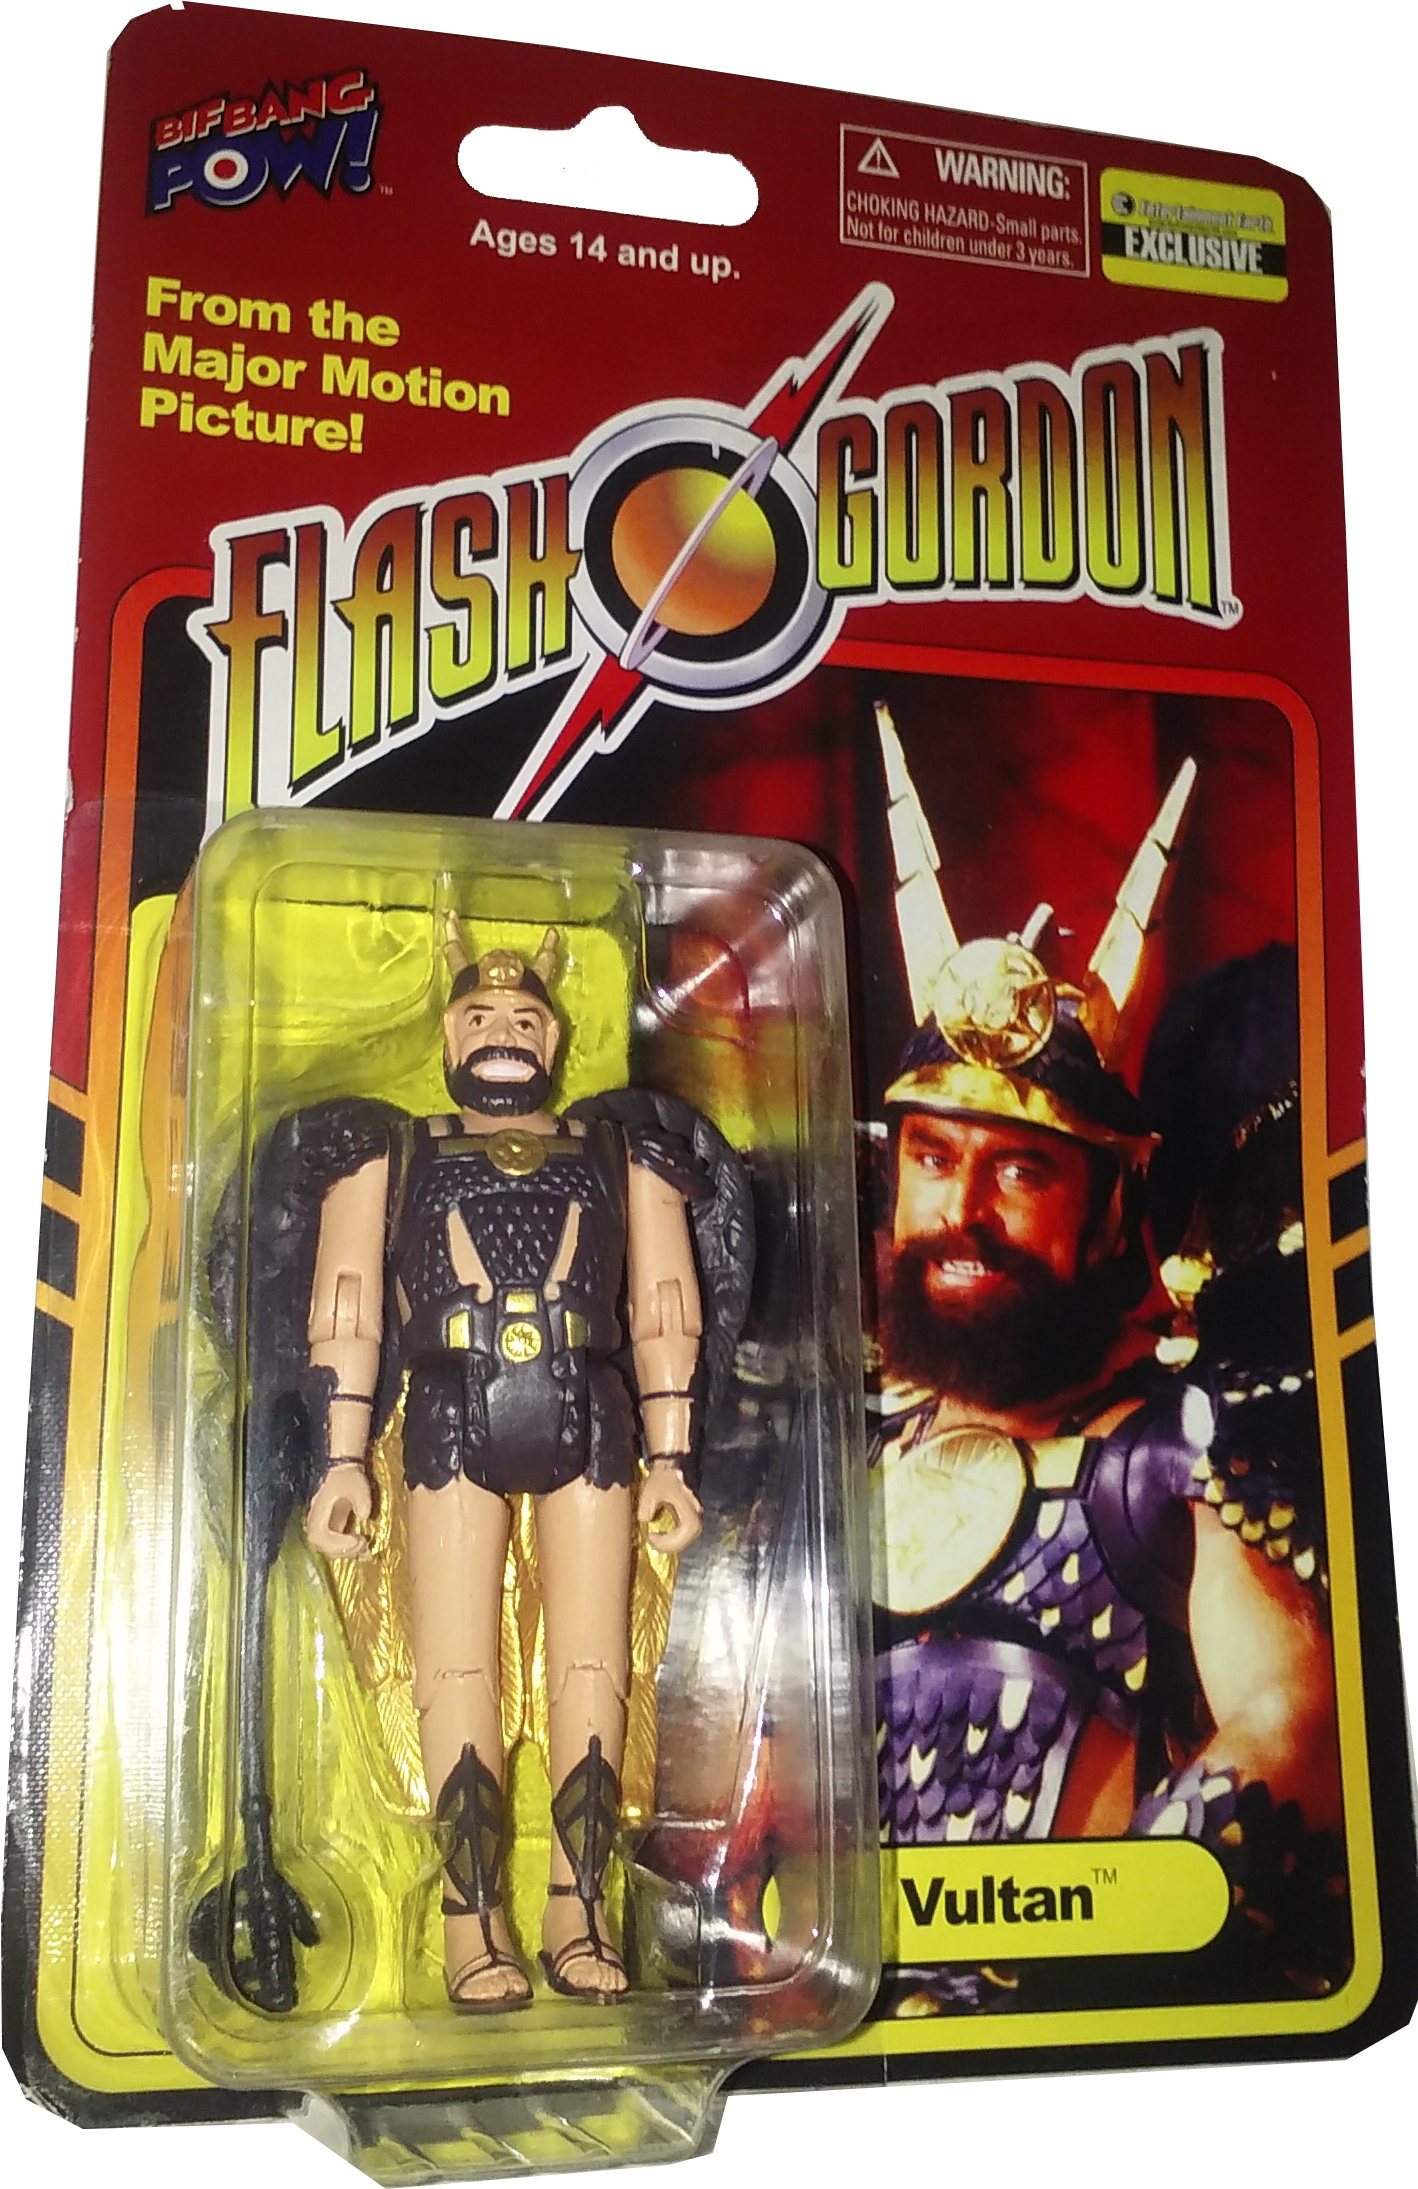 Bif Bang Pow! Flash Gordon figures - Prince Vultan